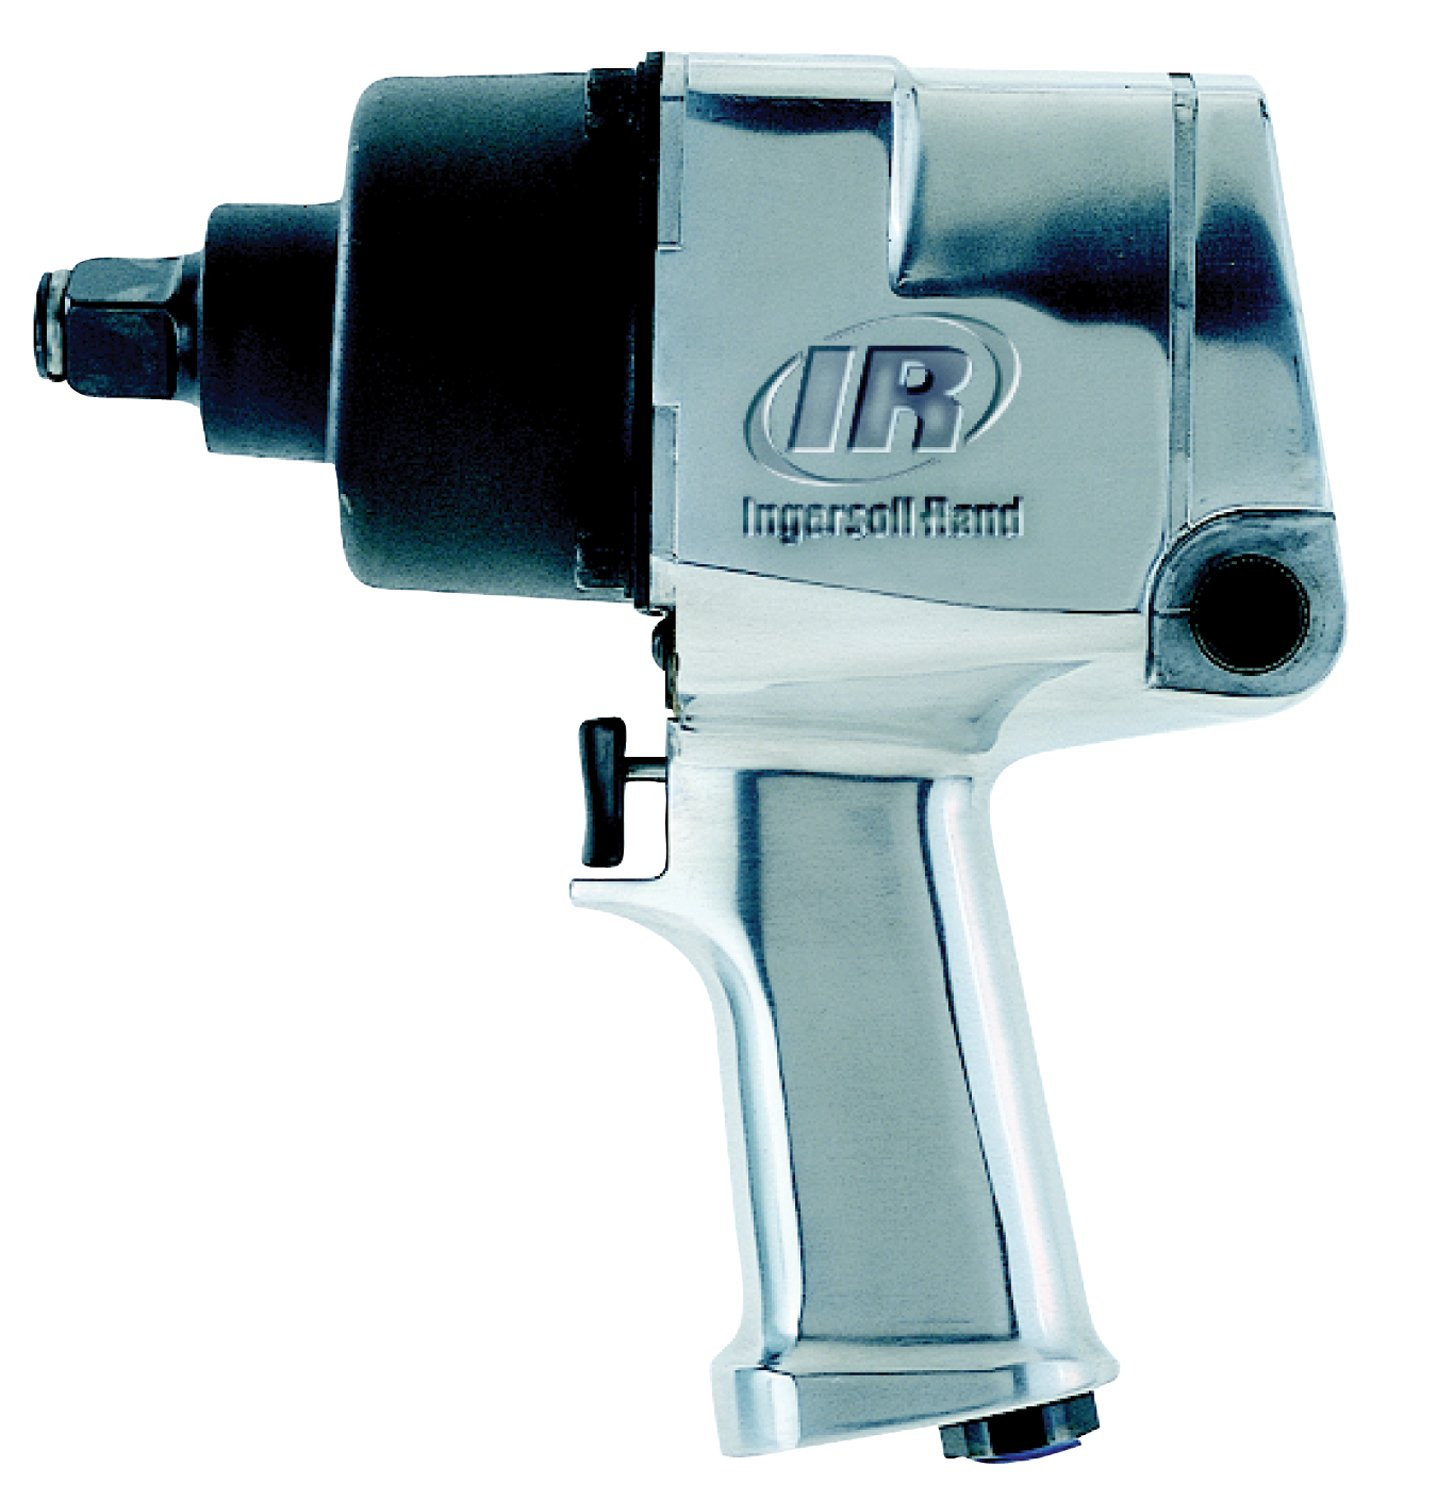 Ingersoll Rand 261 4 Inch Impact Wrench